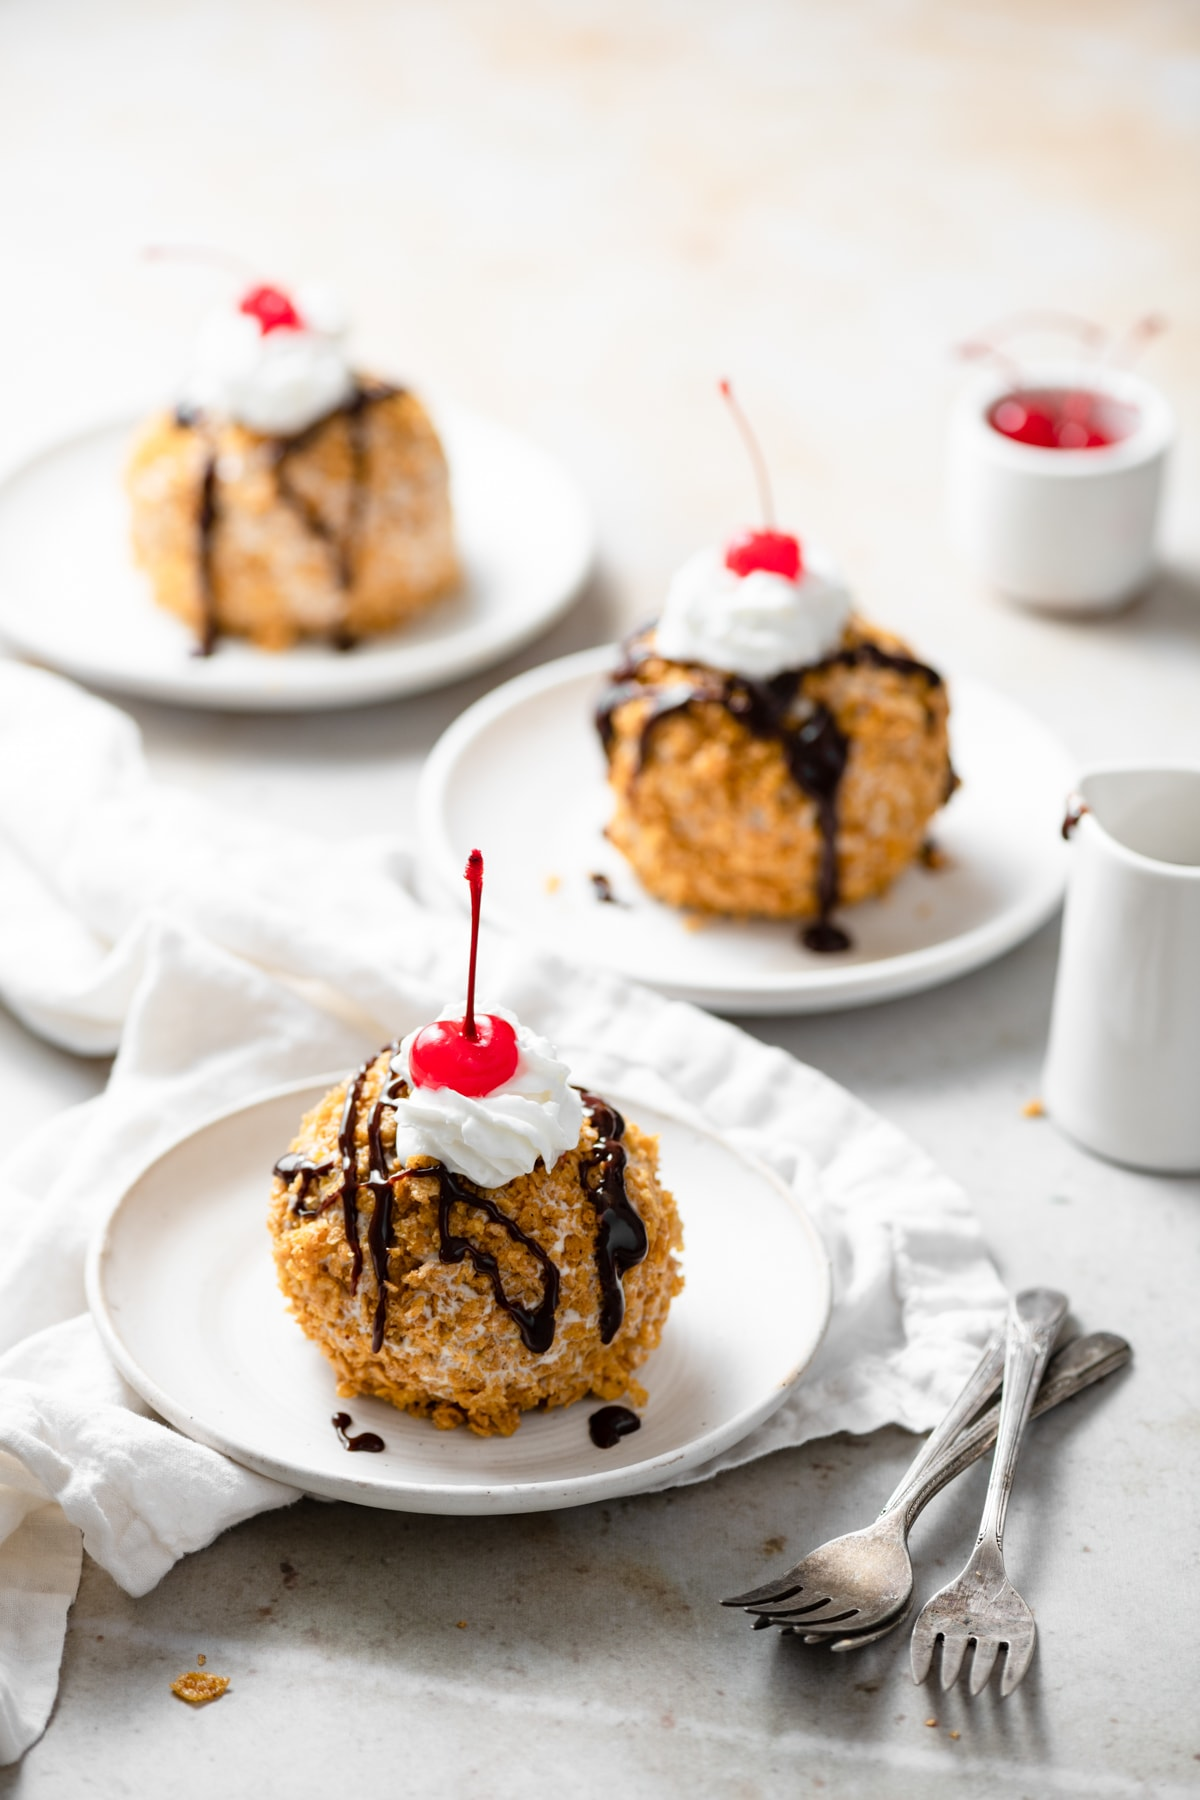 Three individual servings of fried ice cream coated in cinnamon cornflake topping, drizzled with chocolate sauce and garnished with a cherry.